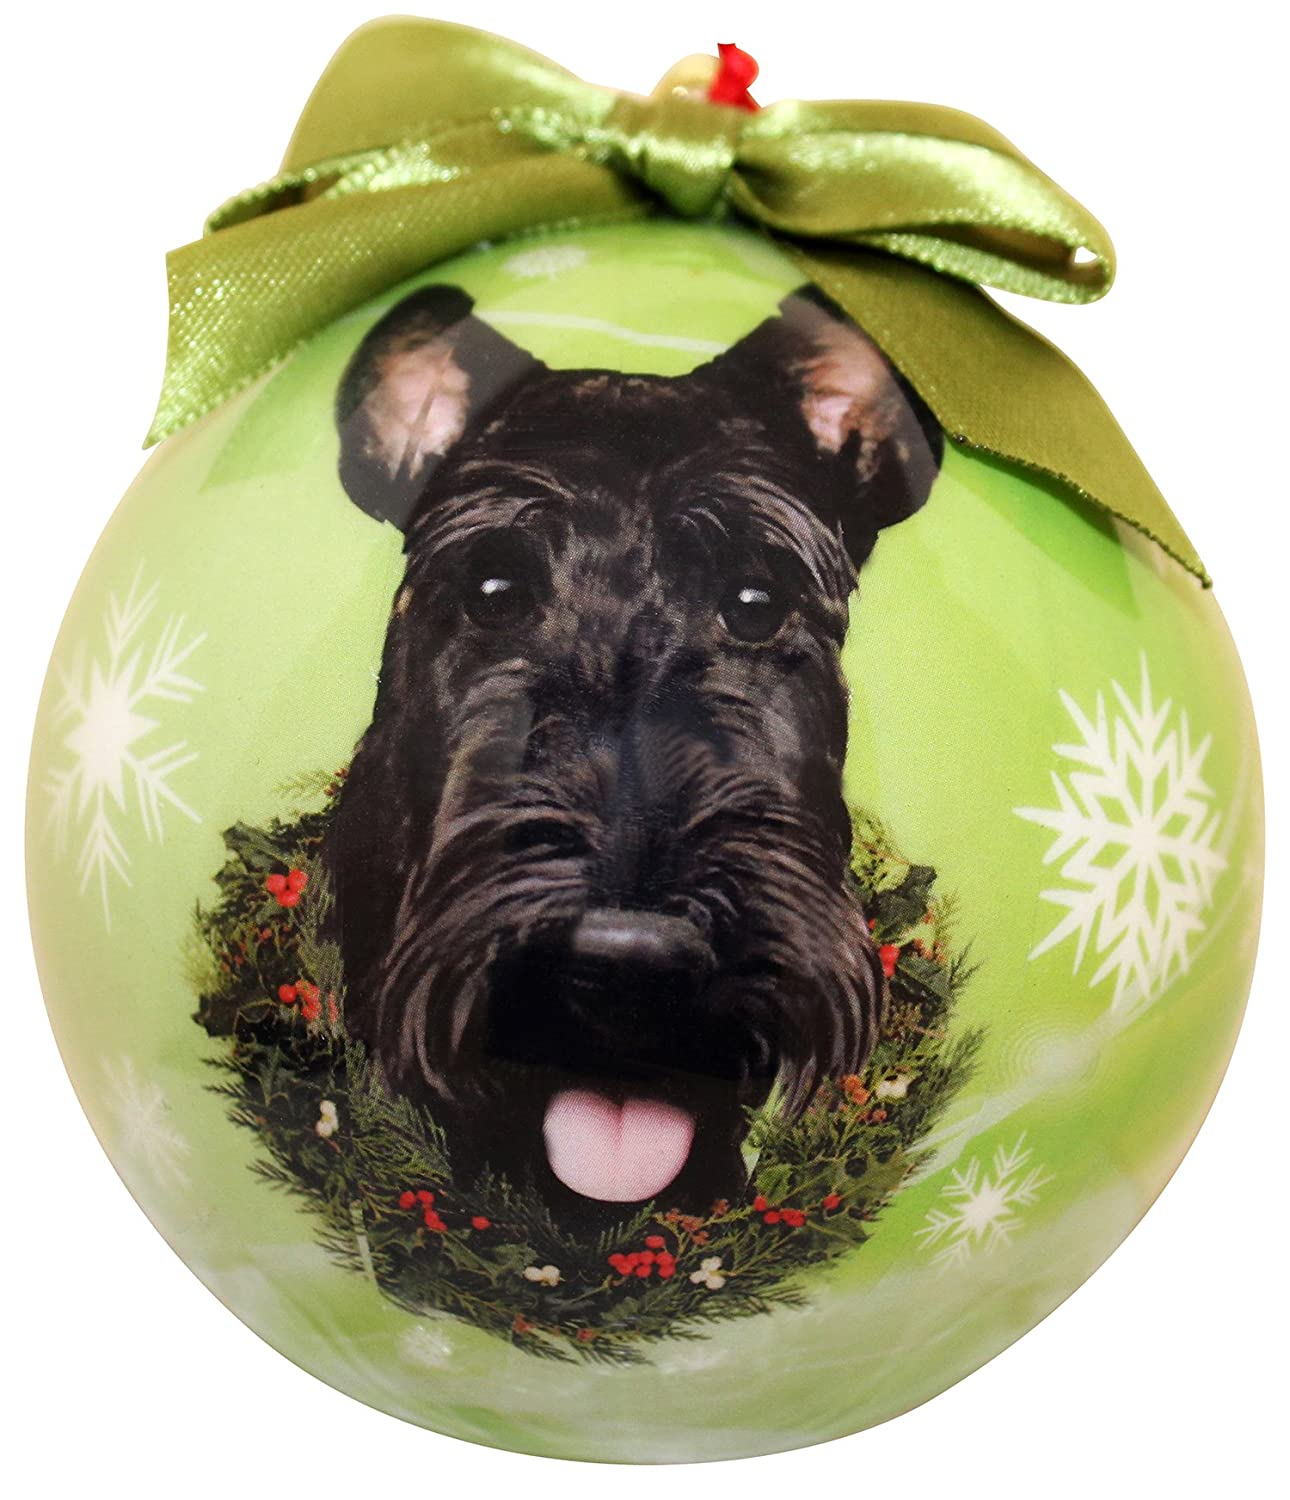 Scottish Terrier Christmas Tree Ornaments for Dog Fans